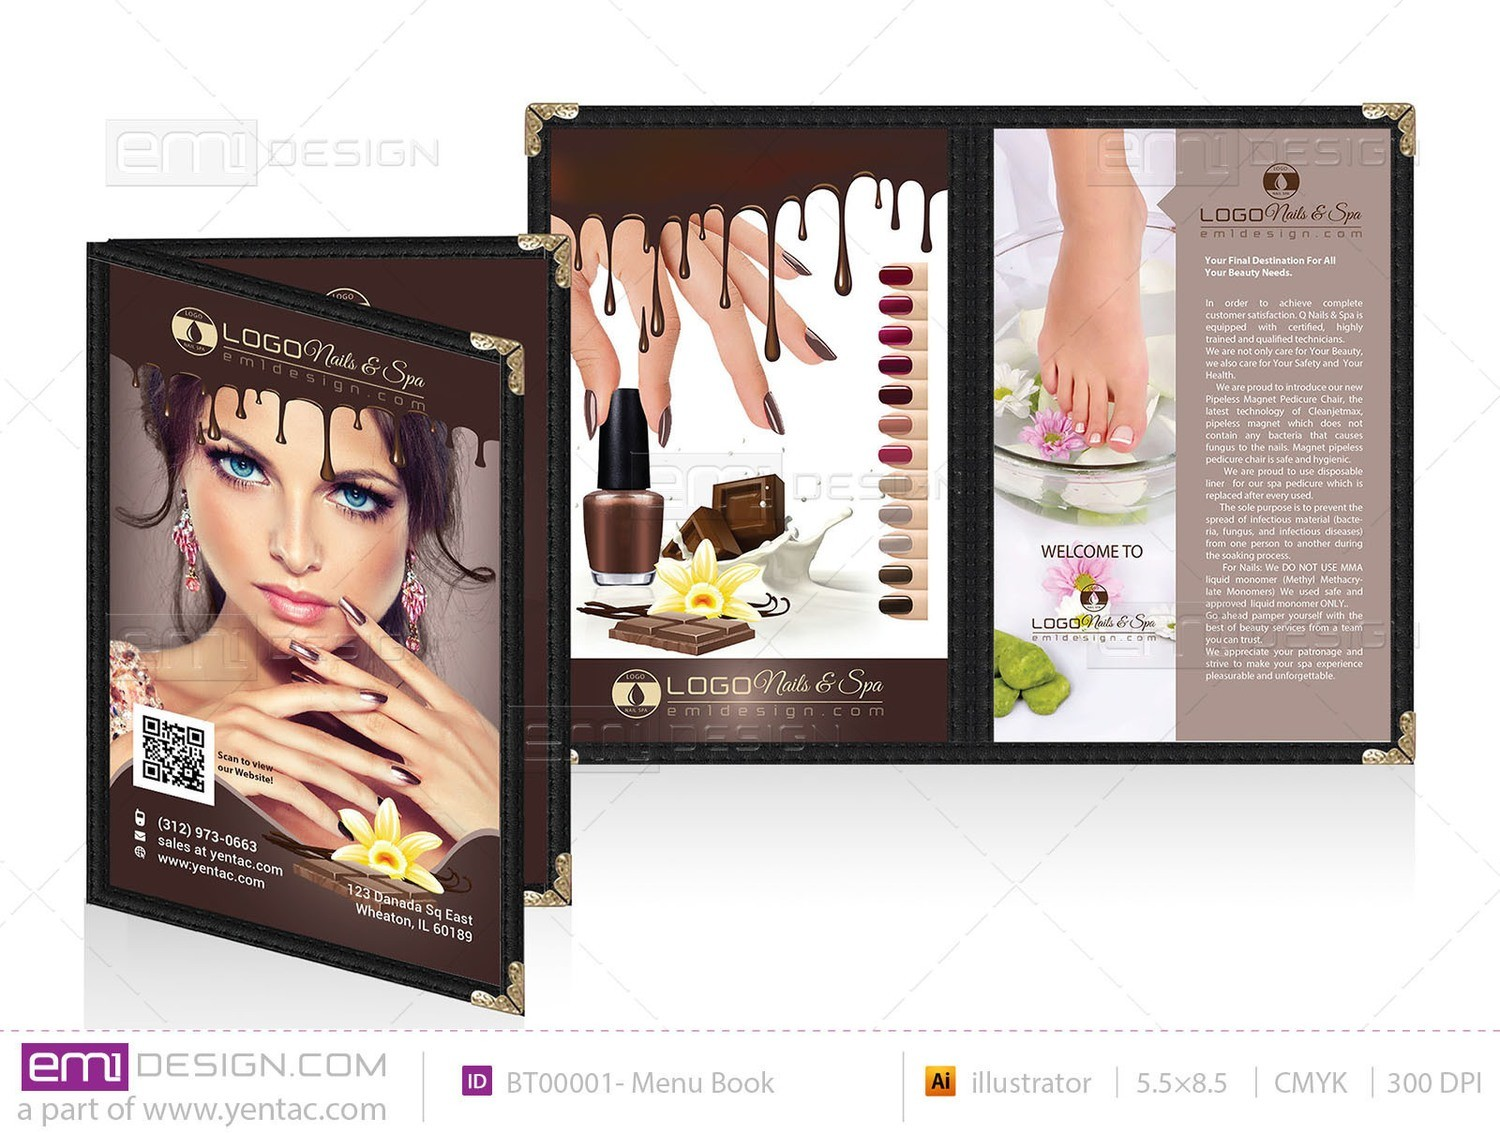 03 - Menu Book 5.5 x 8.5 - Chocolate Brown Color Template#: BT00001